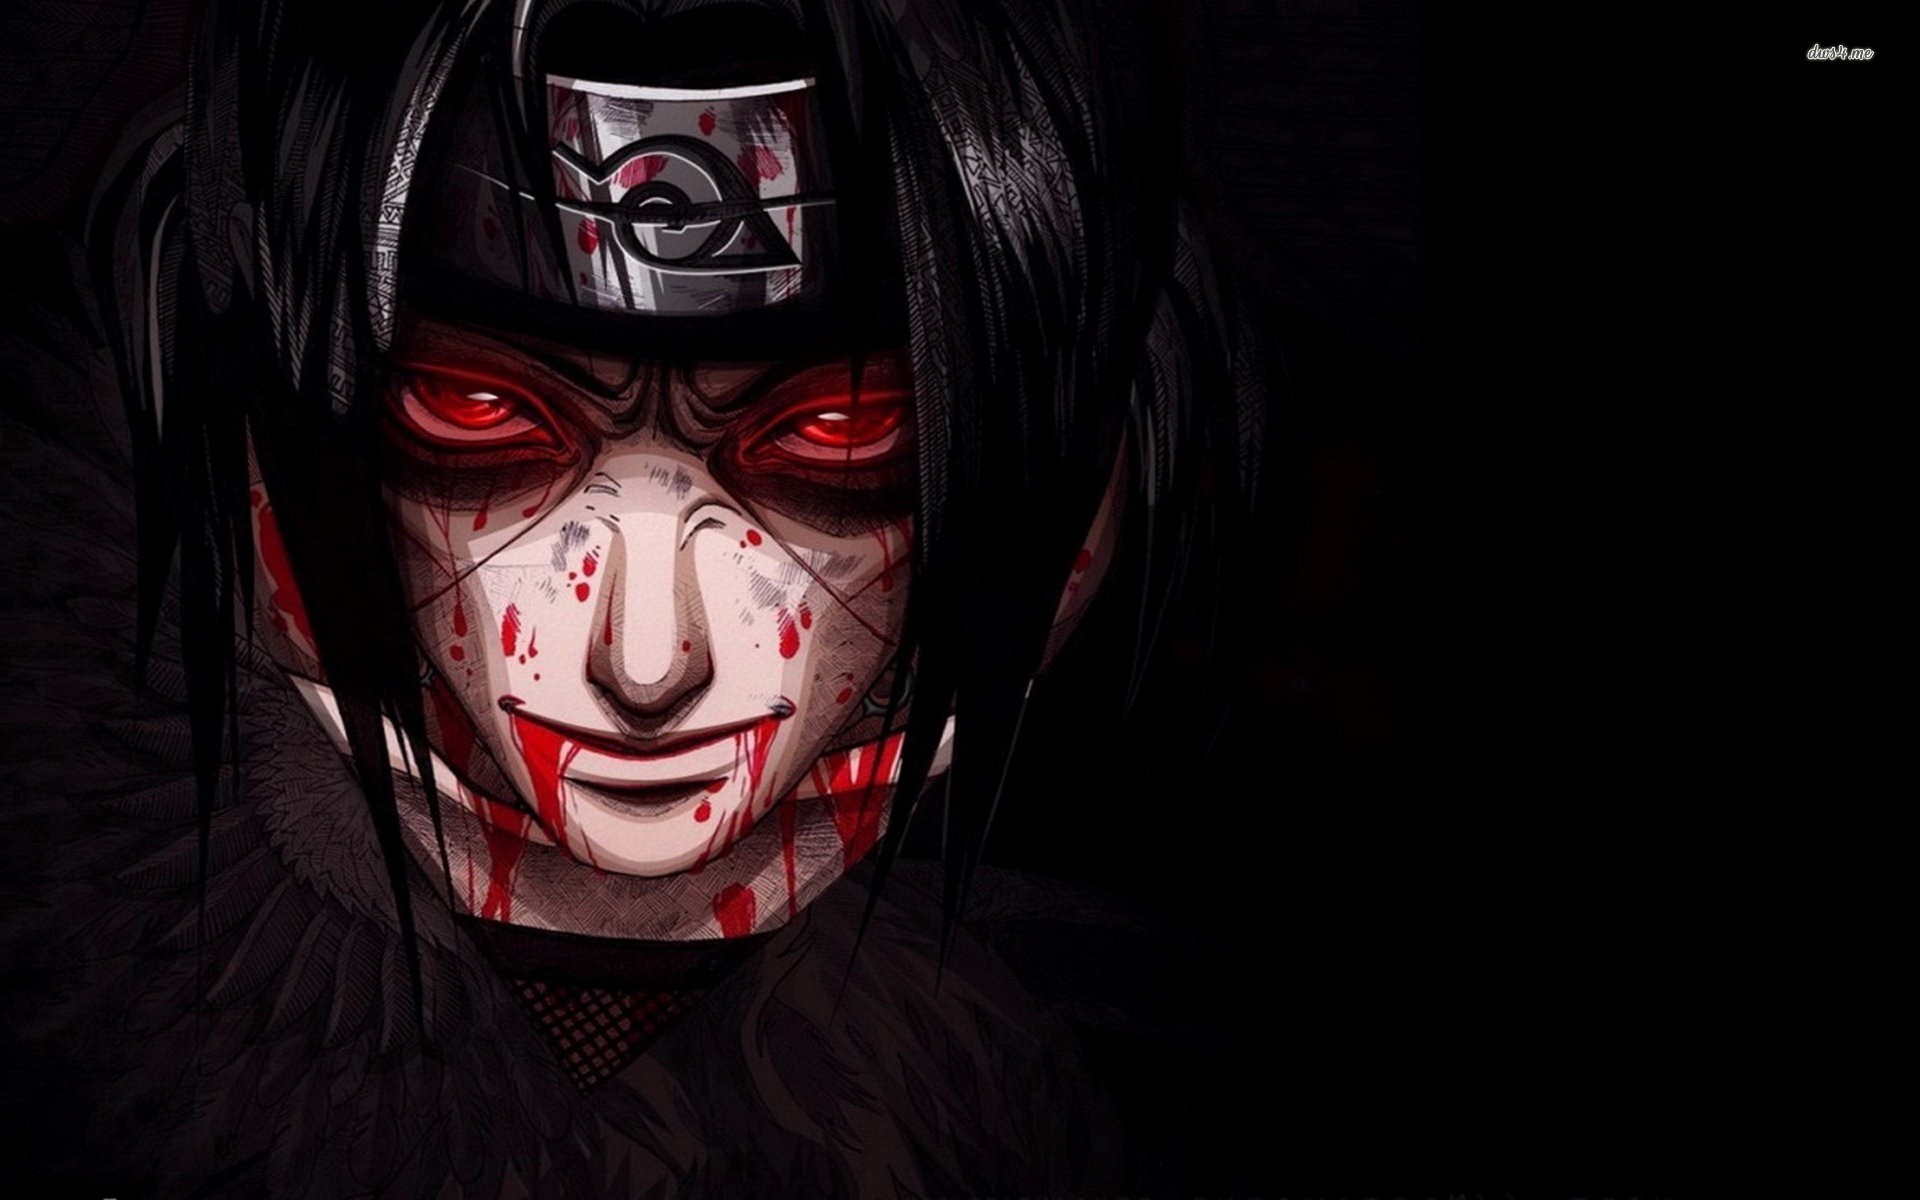 Itachi Uchiha Susanoo Wallpaper Hd: Itachi Uchiha Wallpaper ·① Download Free Awesome